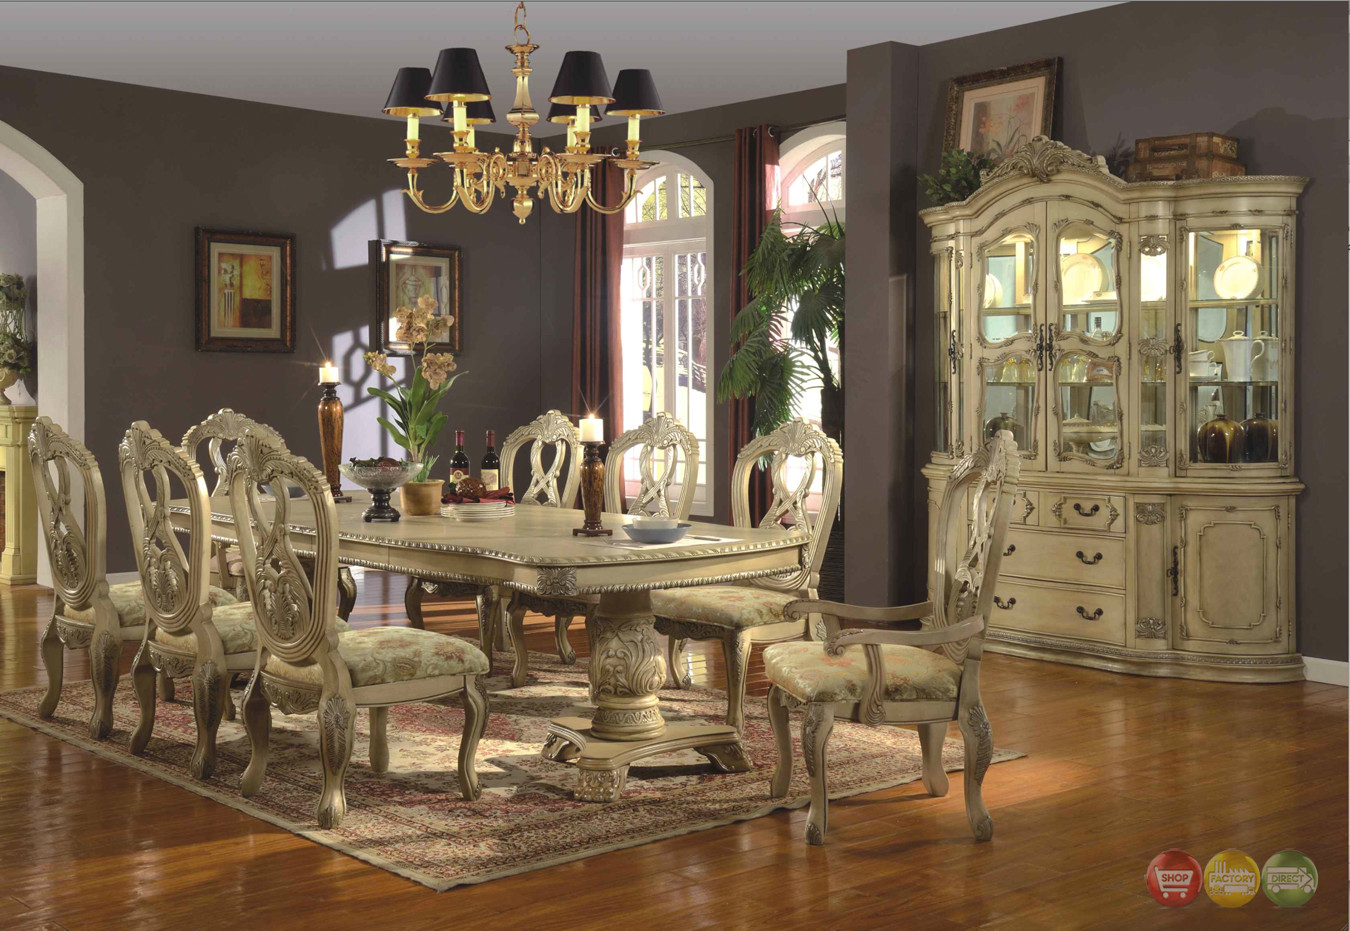 Best ideas about Formal Dining Rooms Furniture . Save or Pin WhiteHall Formal Dining Double Pedestal Table Now.